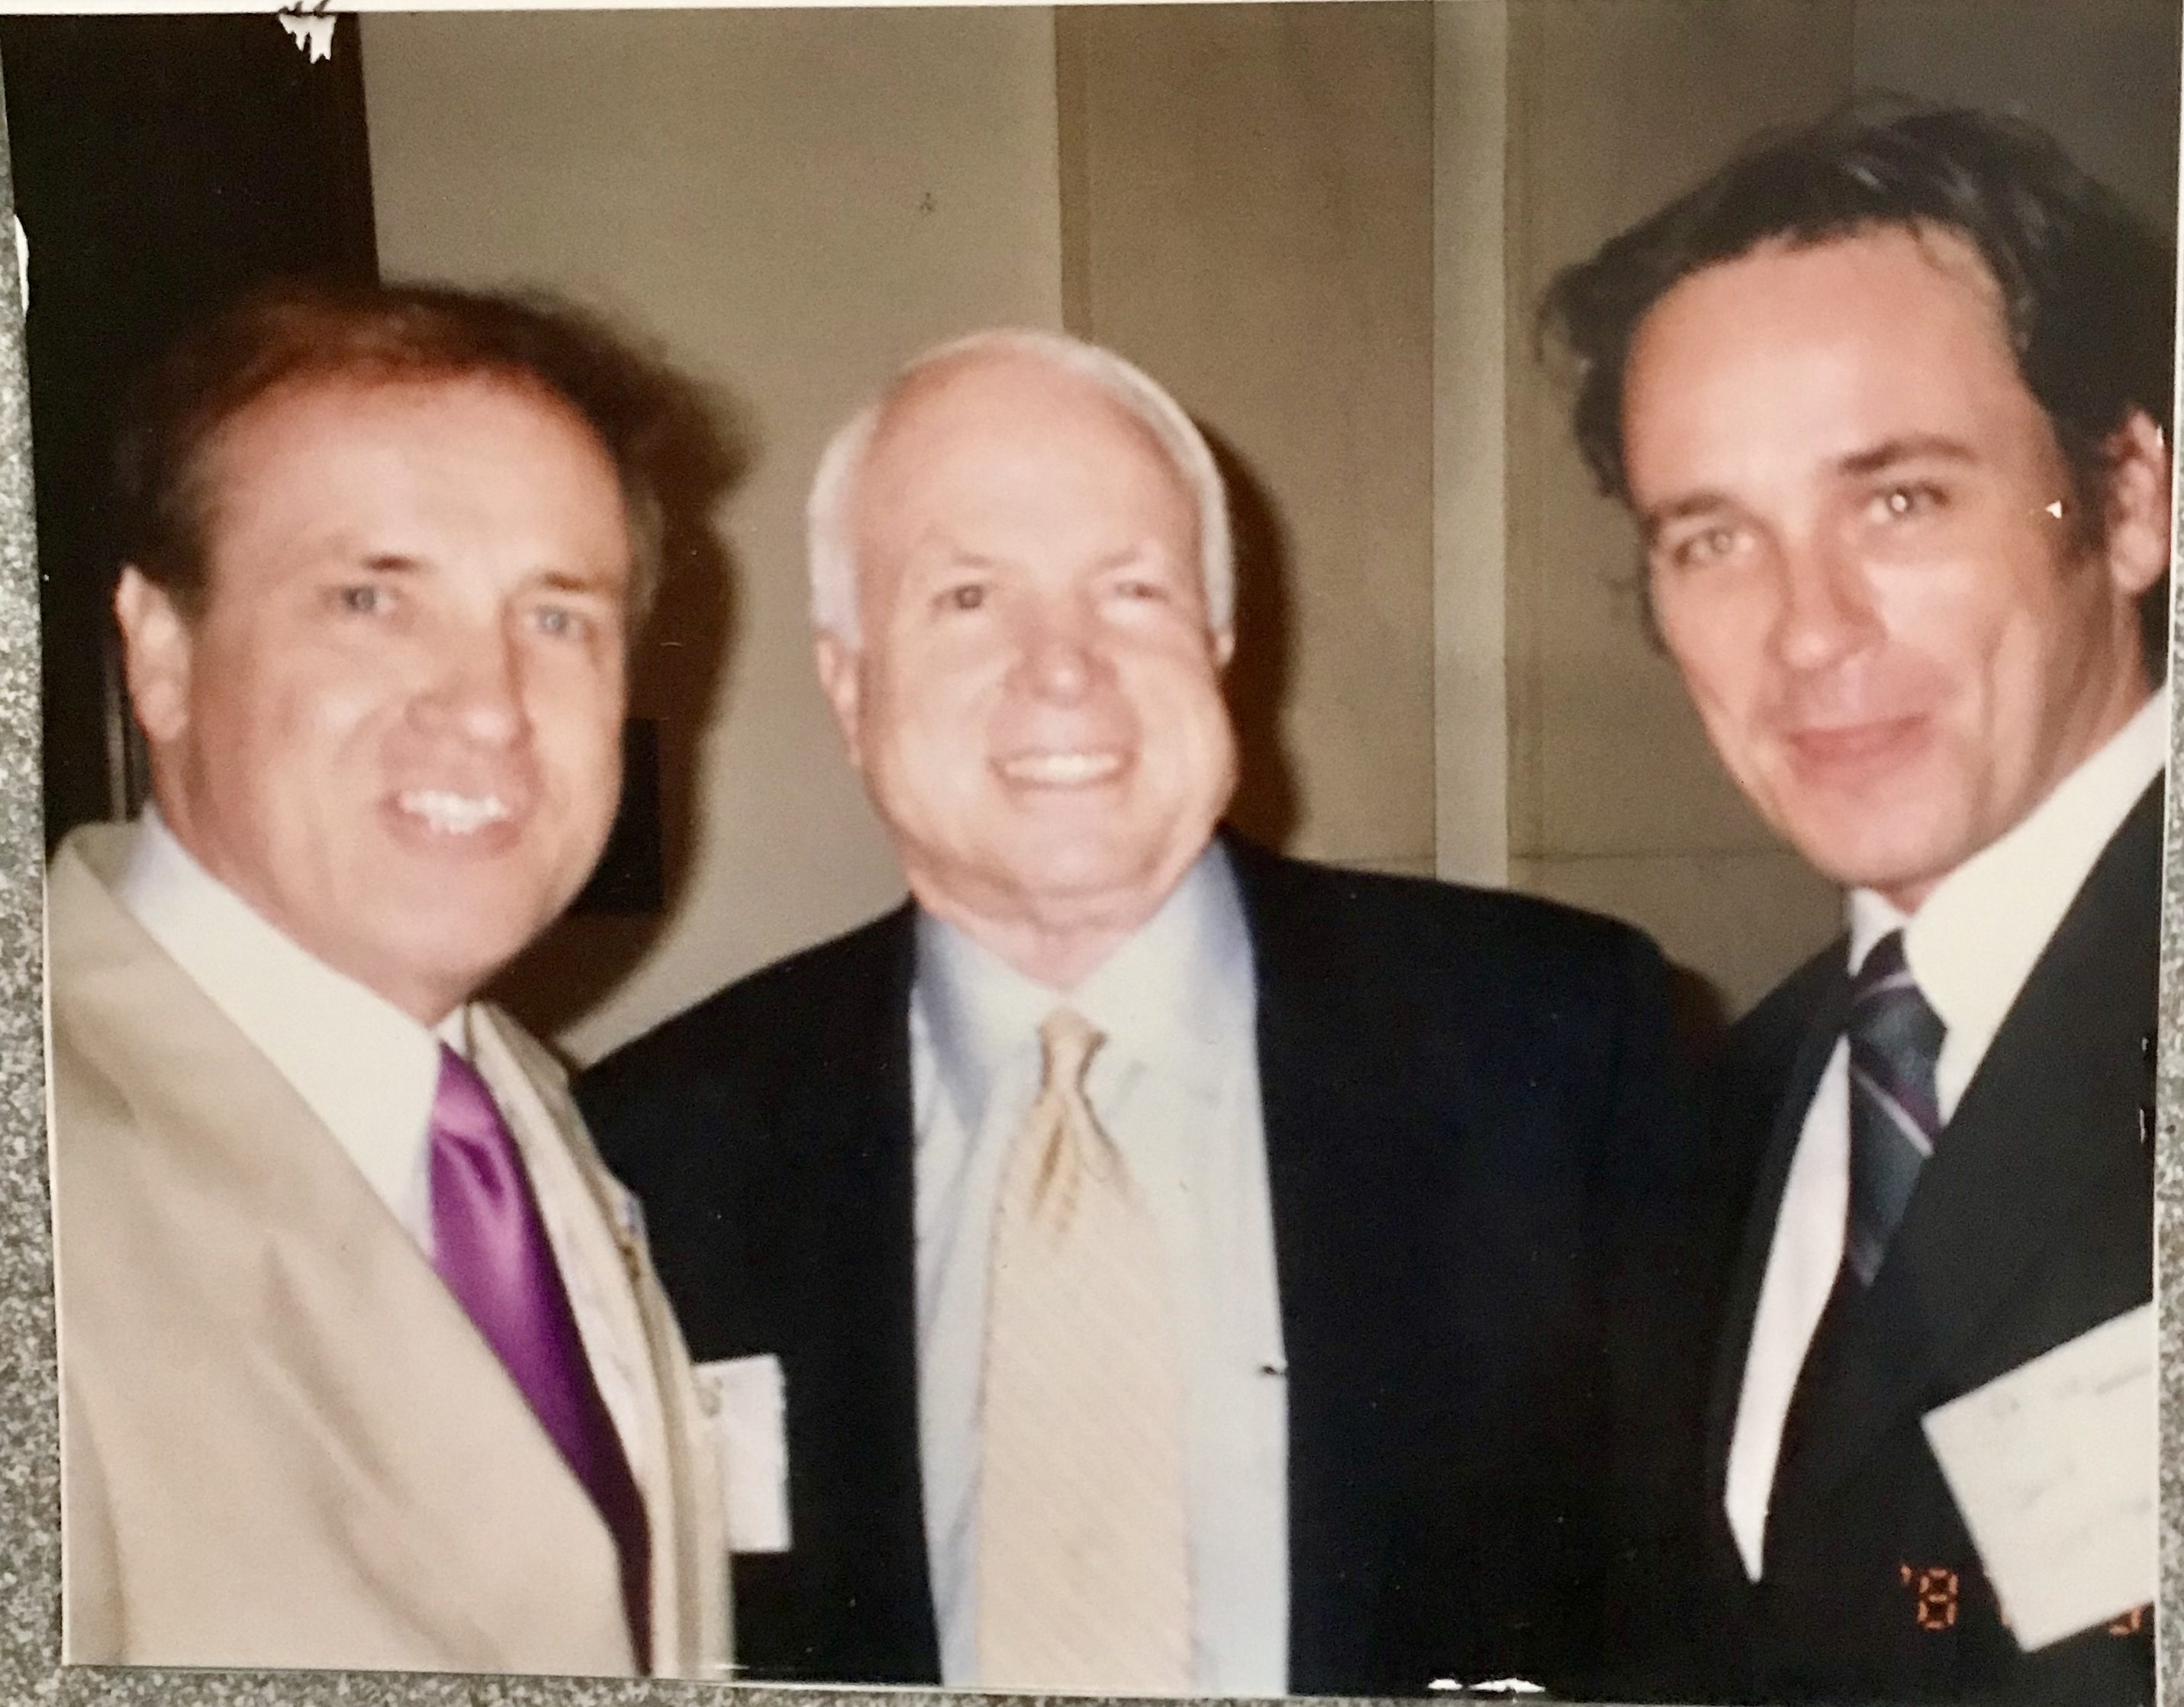 David Christian, John McCain and son David